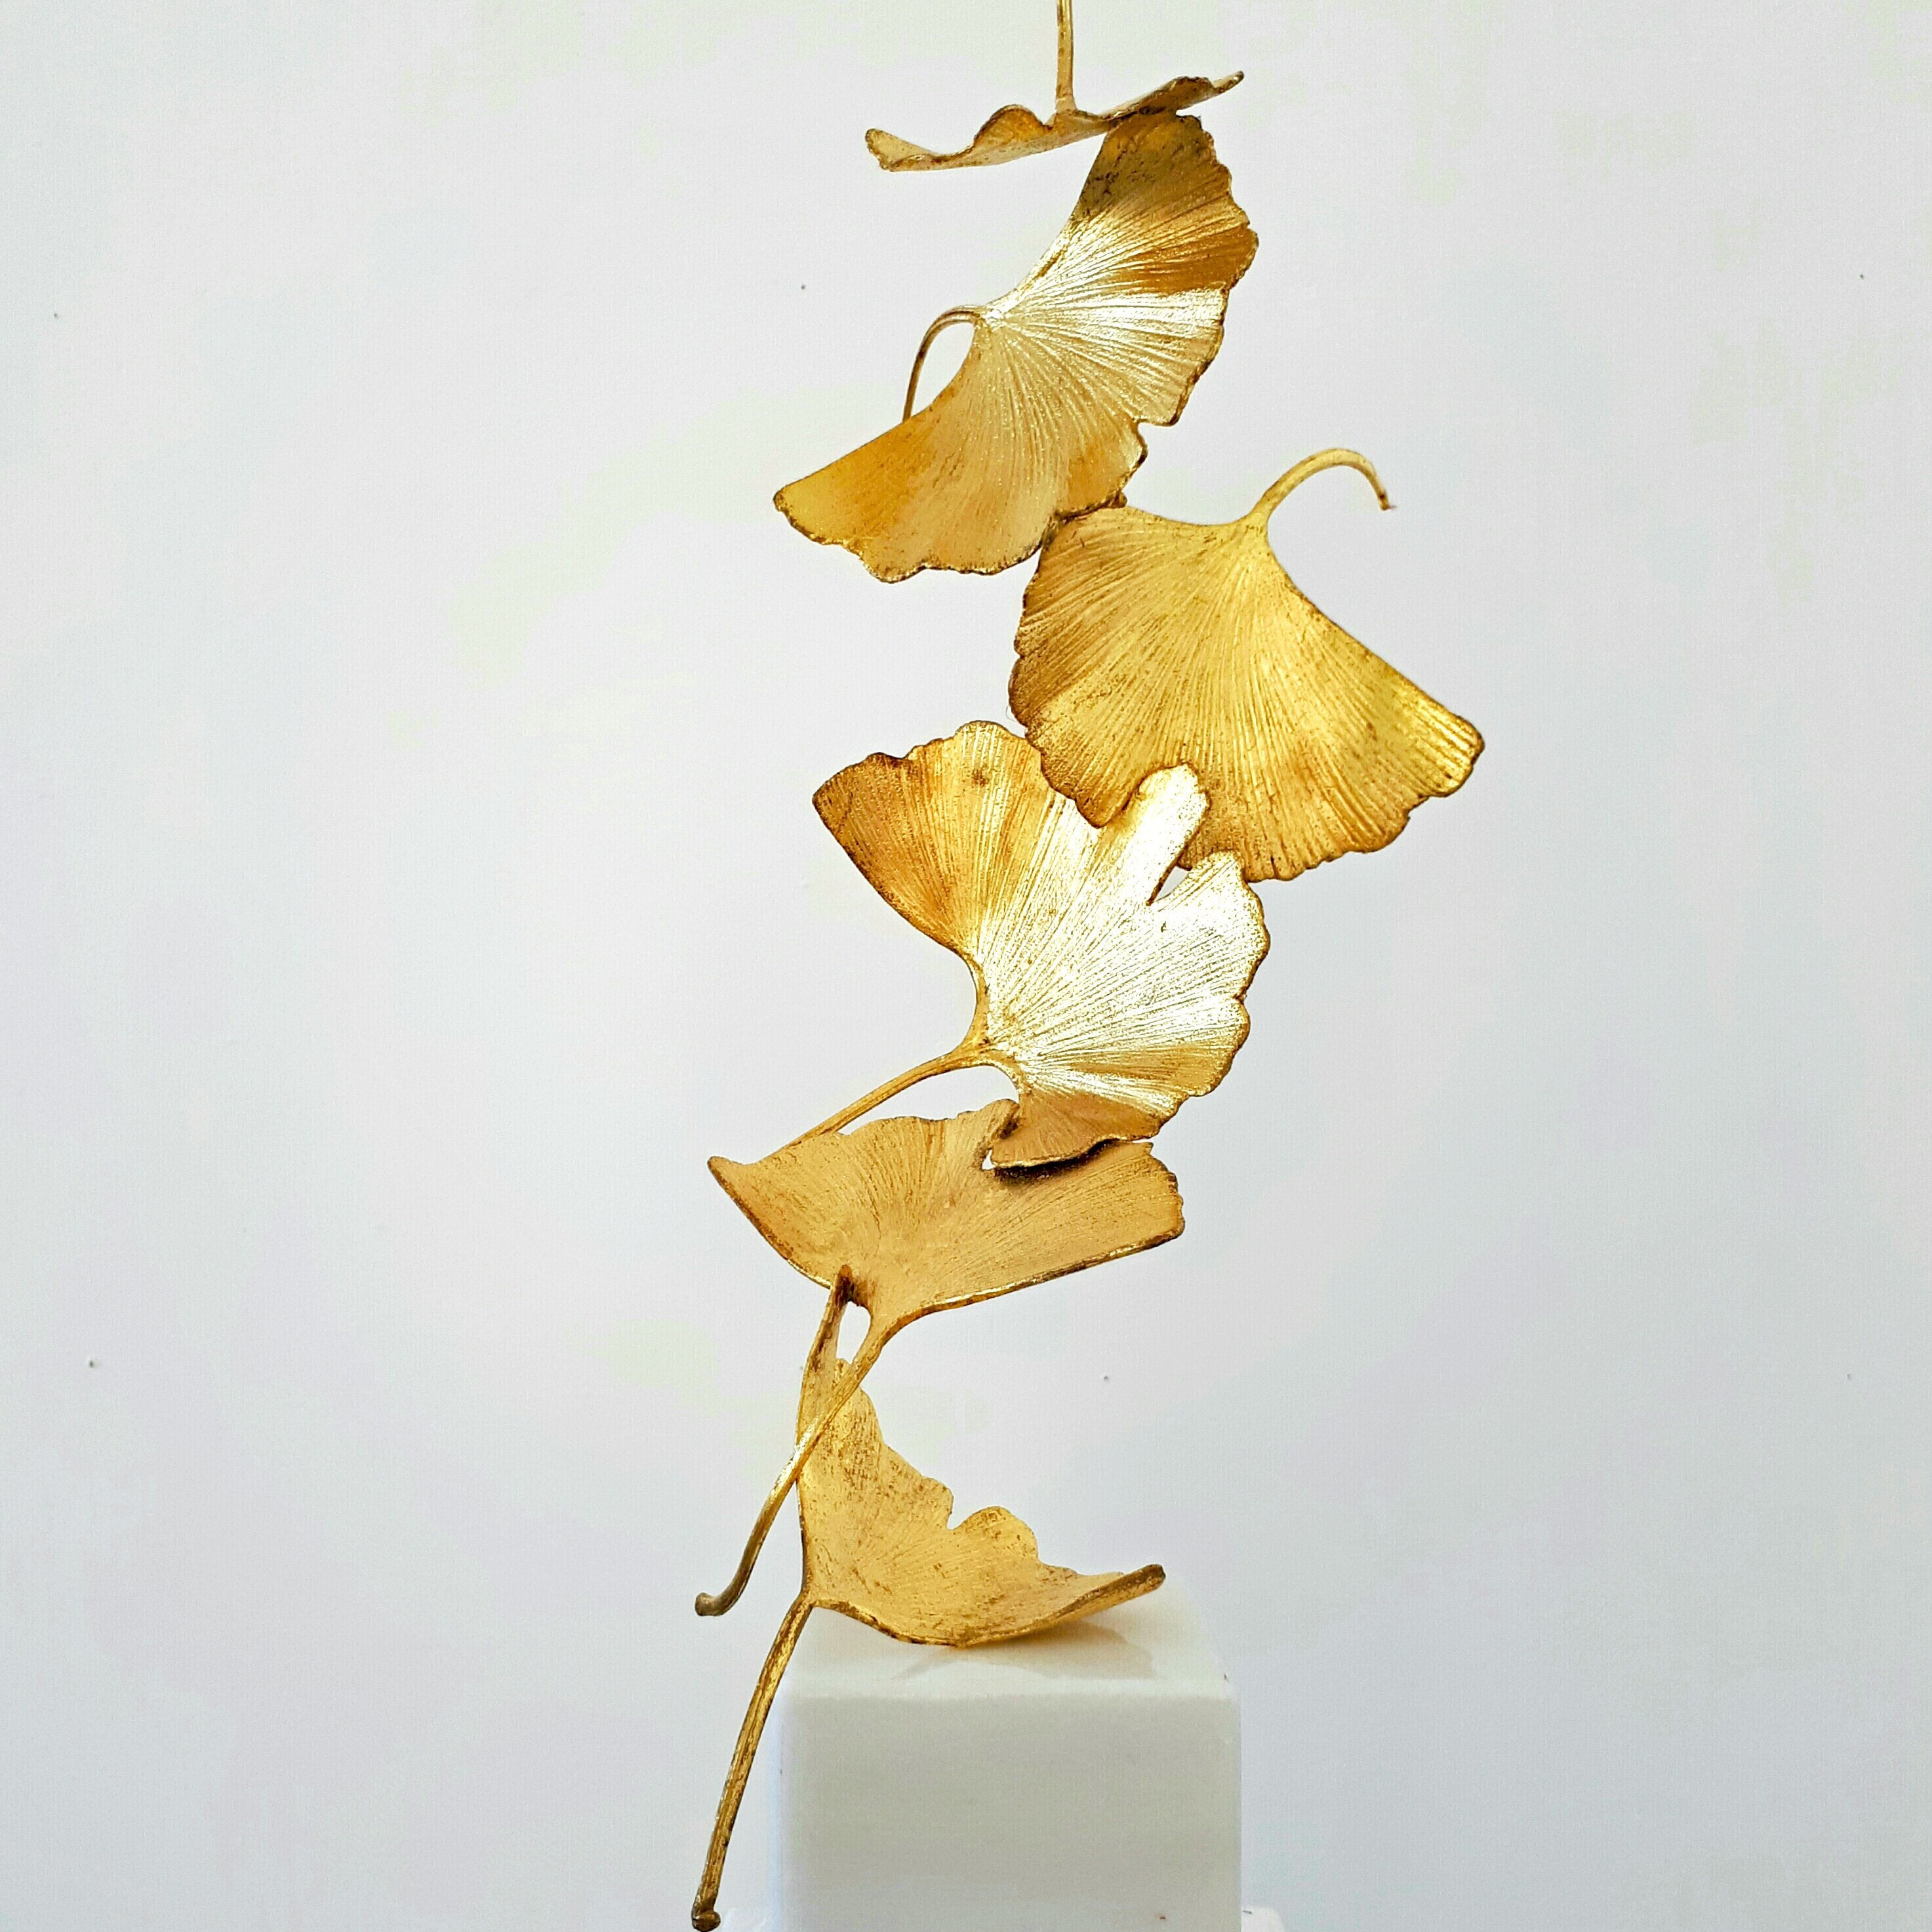 Golden Gingko 6 leaves - Kuno Vollet